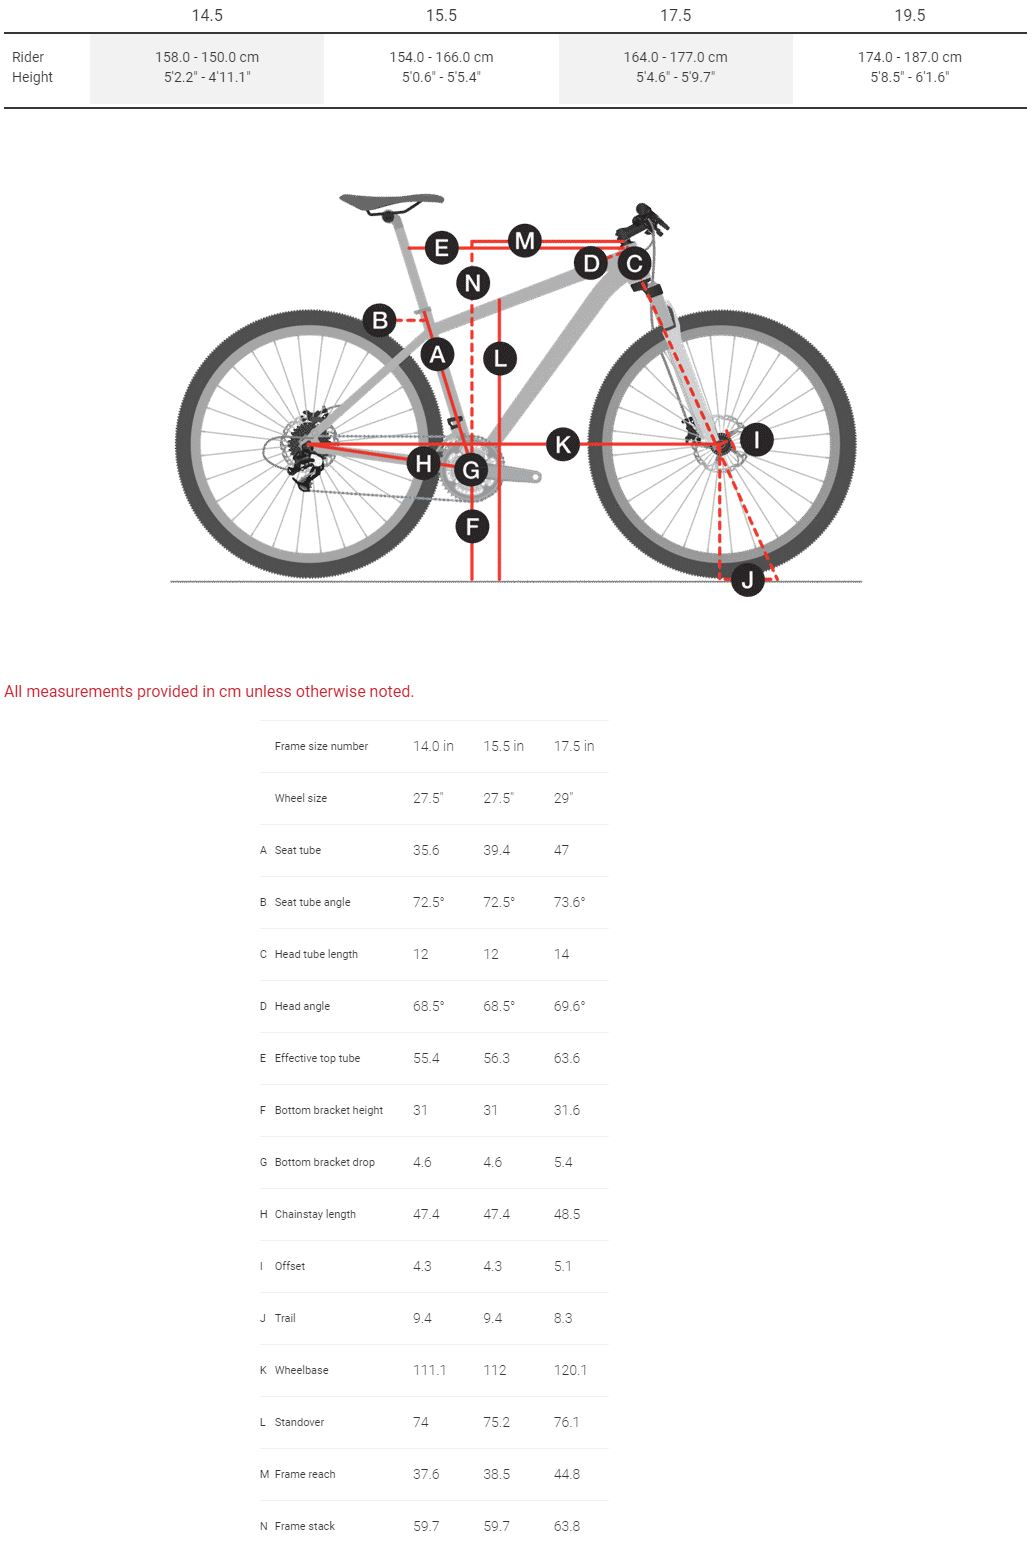 Trek Powerfly Women's Geometry Chart